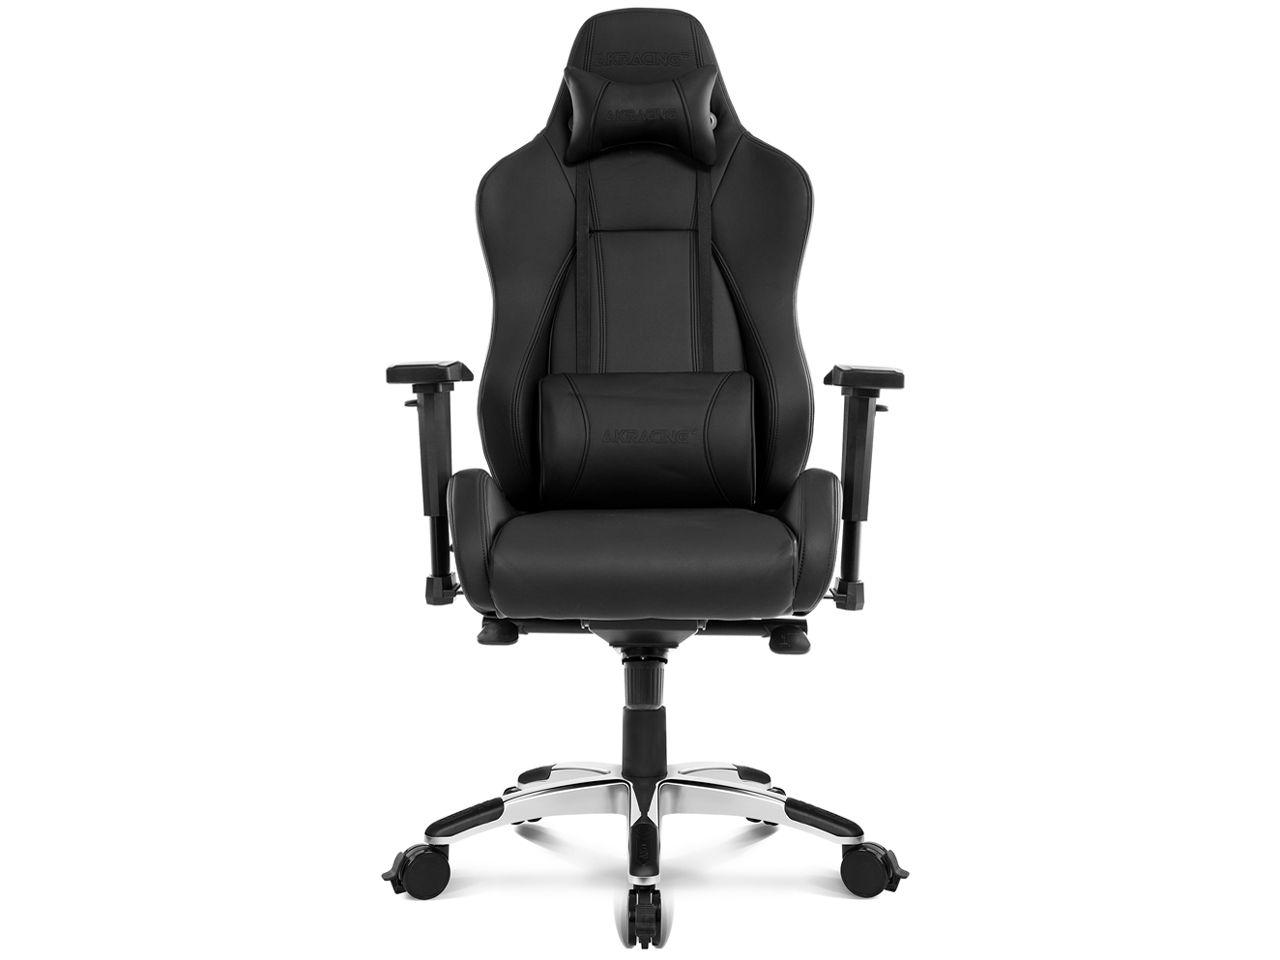 Premium Gaming Chair AKR-PREMIUM-RAVEN [レイブン] の製品画像